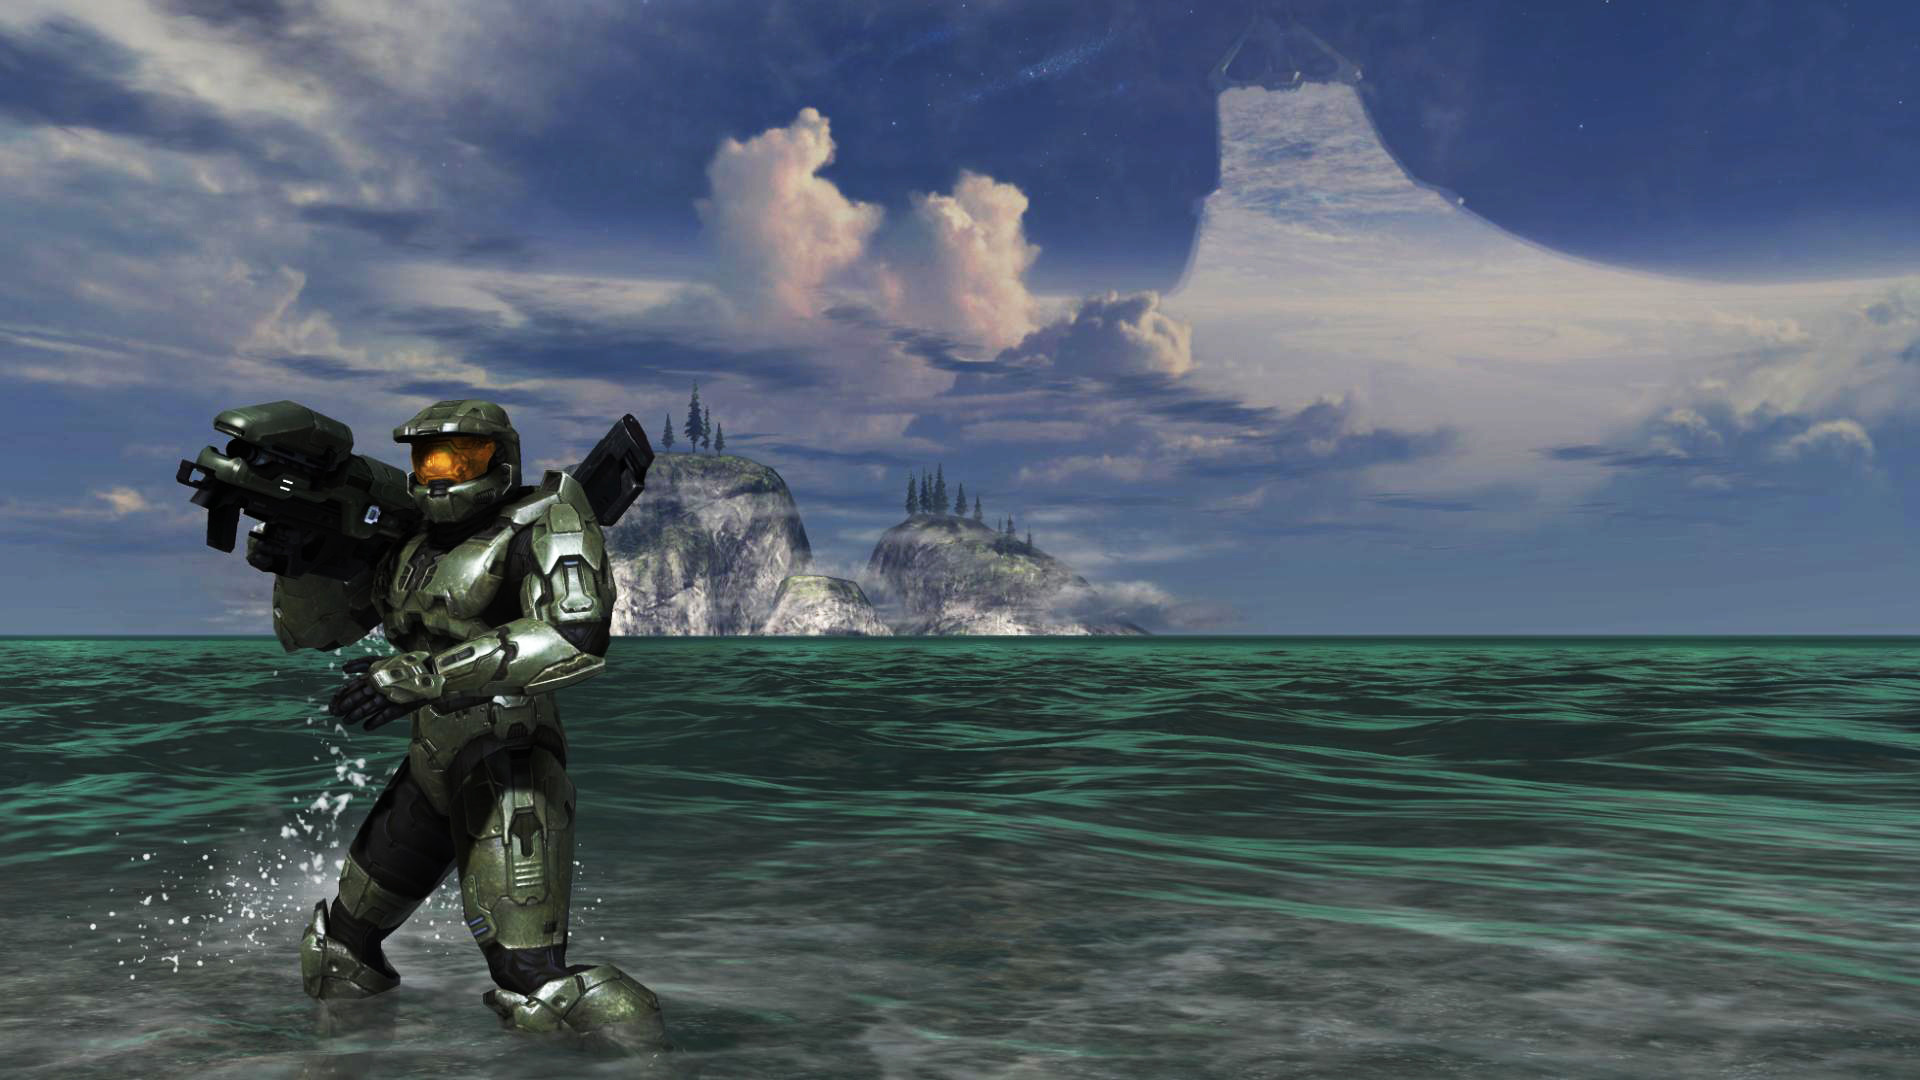 1920x1080 ... Master Chief - Halo 3 by Hischar